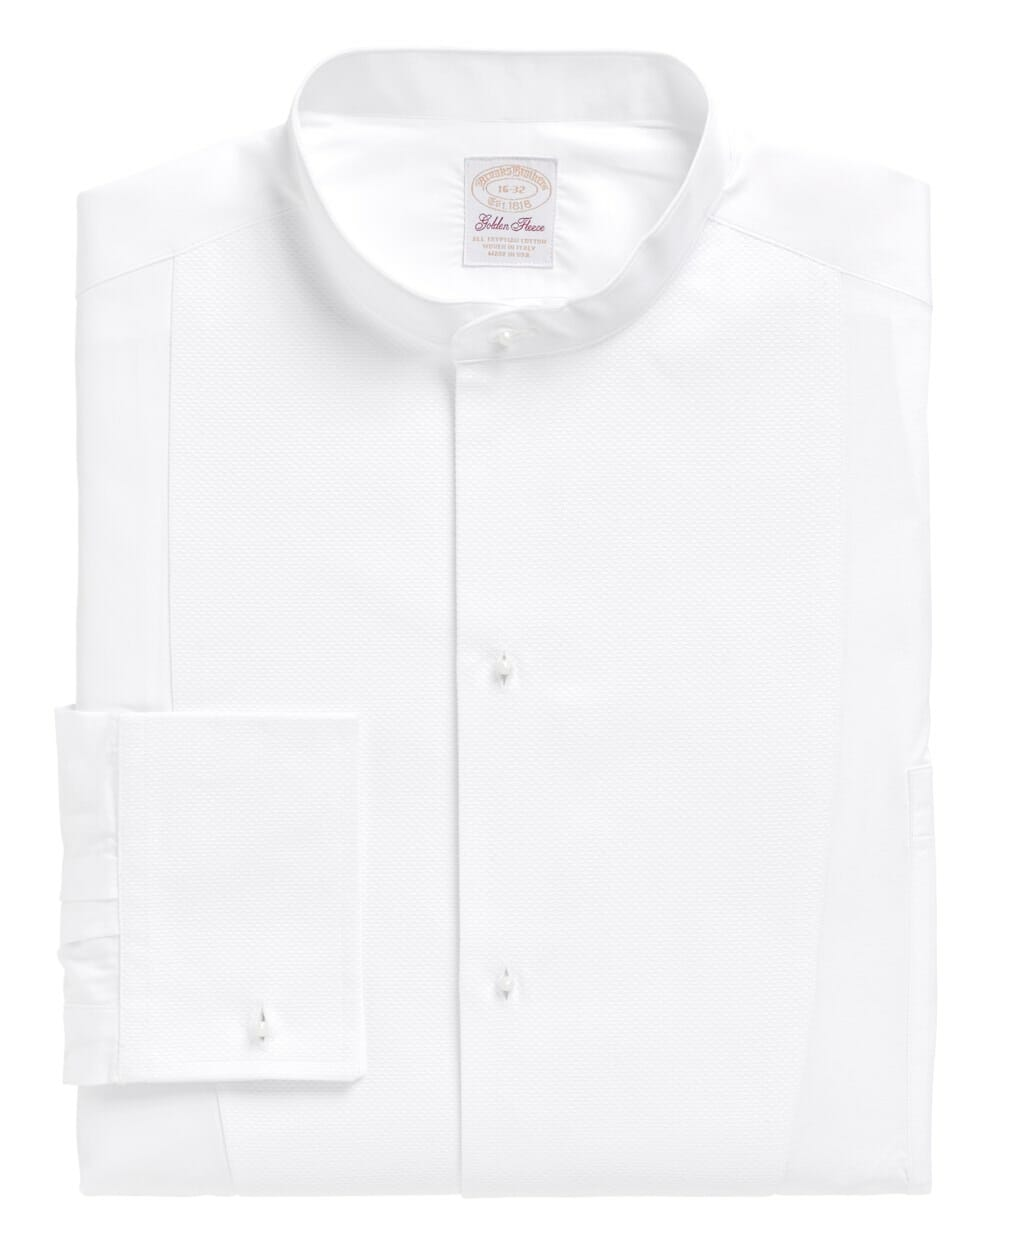 Brooks Brothers White Tie shirt with stiff single cuffs incorrectly described as French Cuff Tuxedo shirt